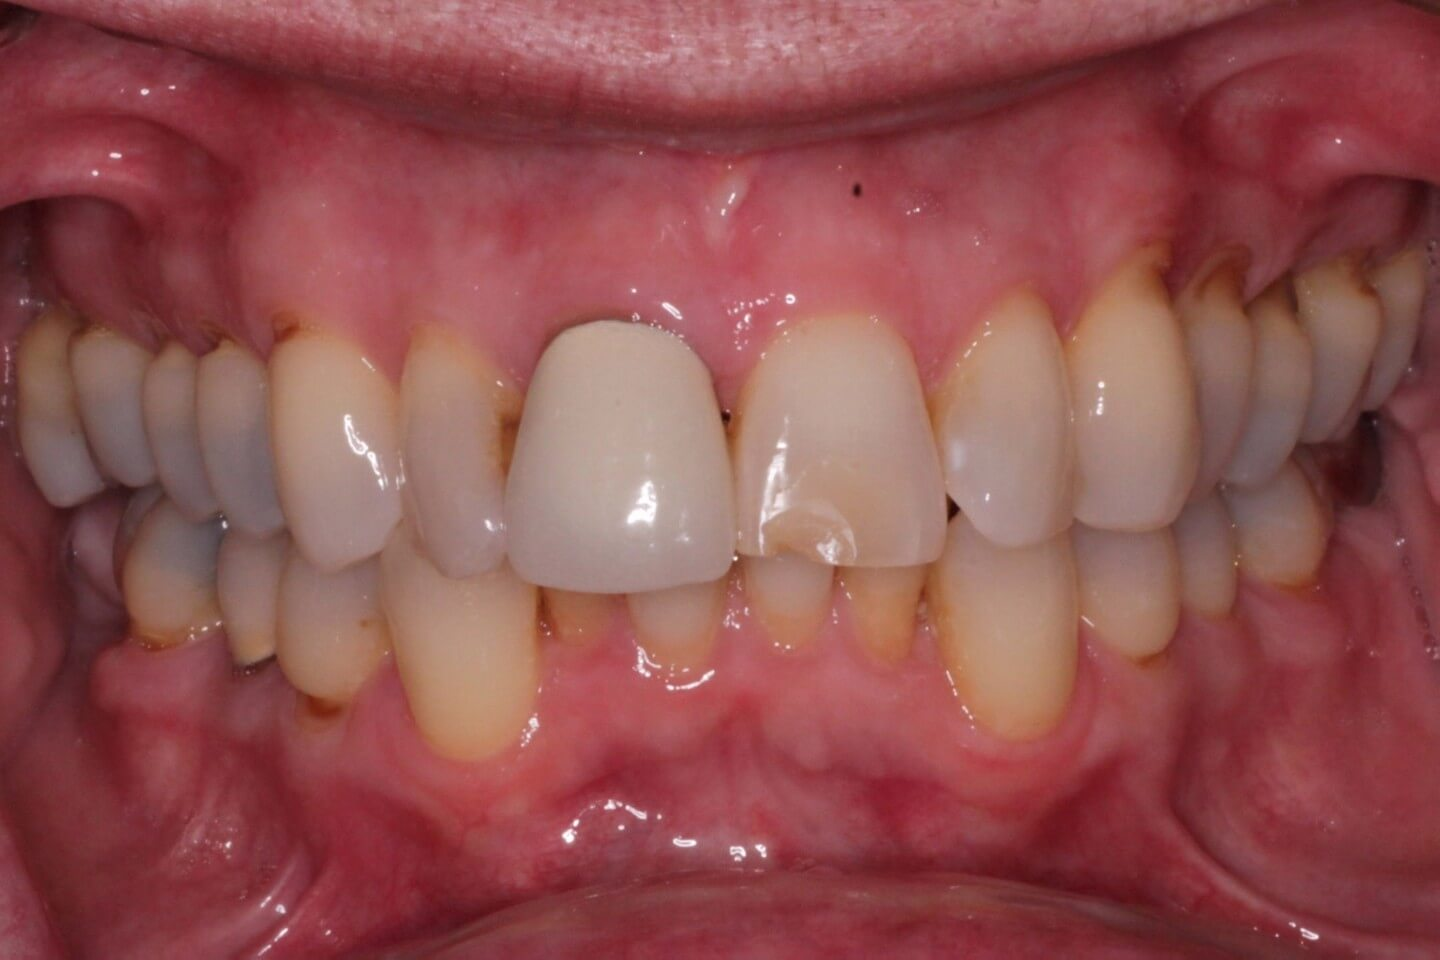 Mismatched crown on front tooth and chipped front tooth